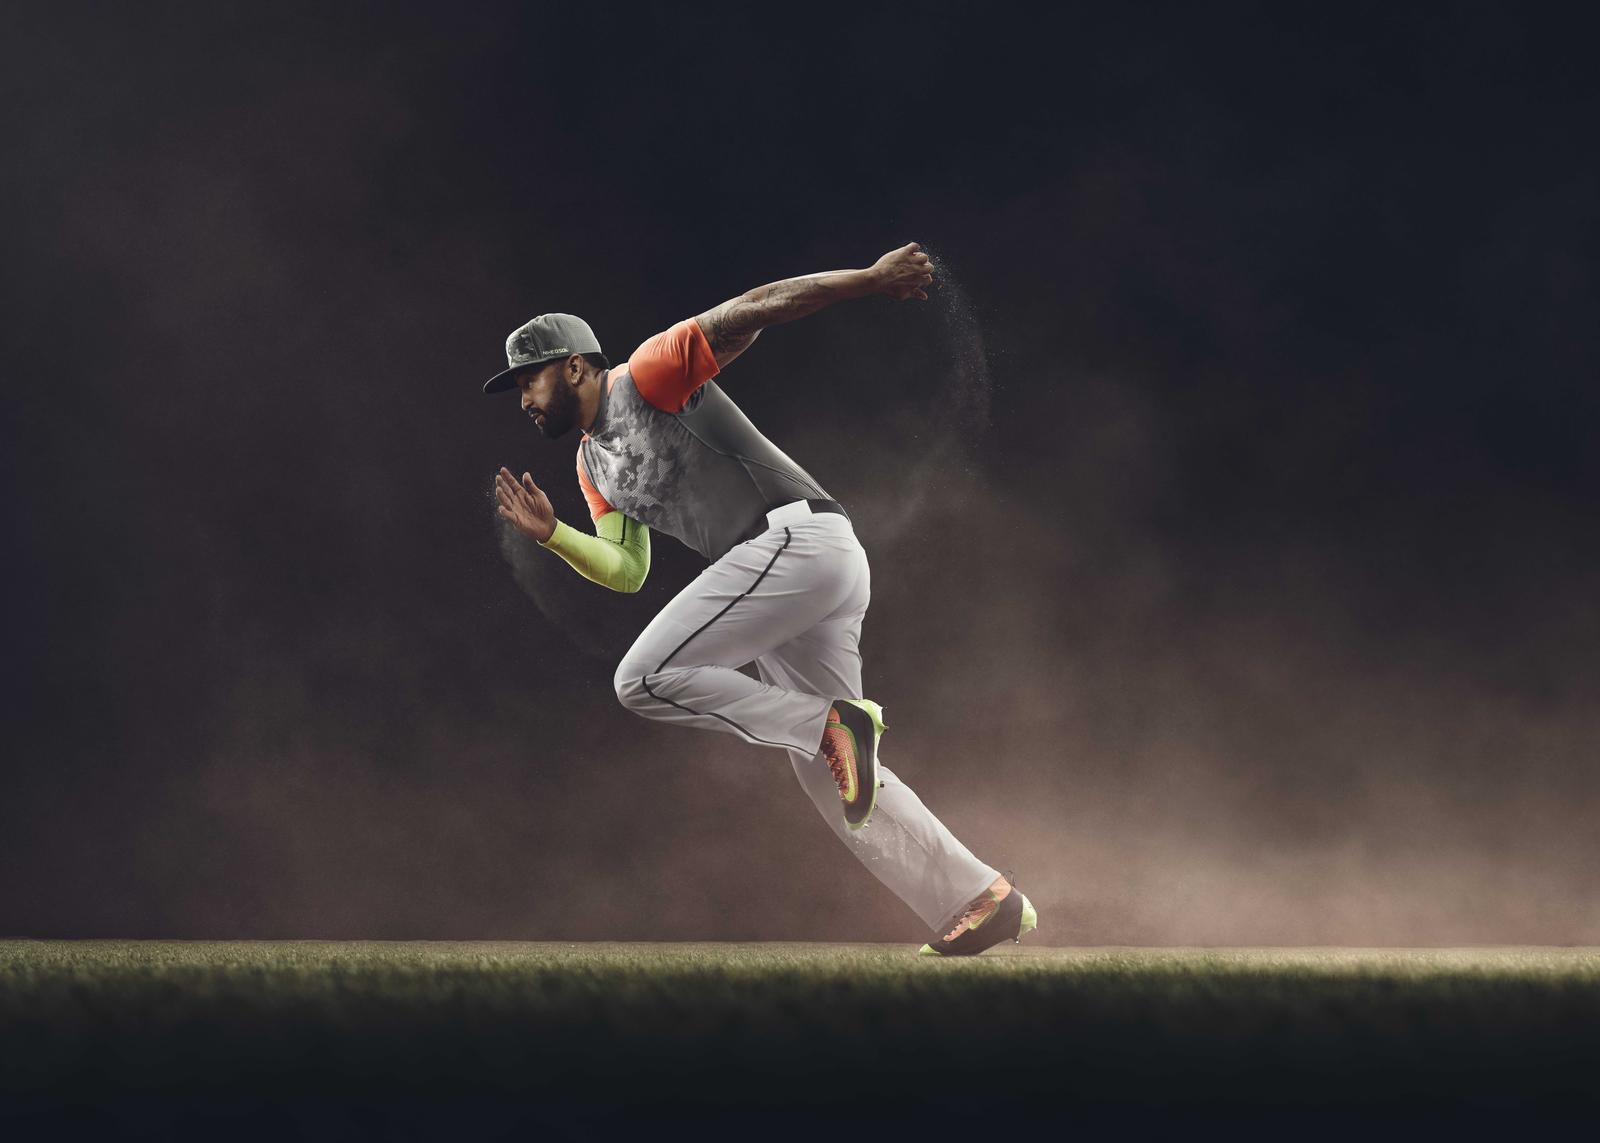 best website 855d7 1d635 Nike Baseball Unveils the Nike Huarache 2K Filth - Nike News